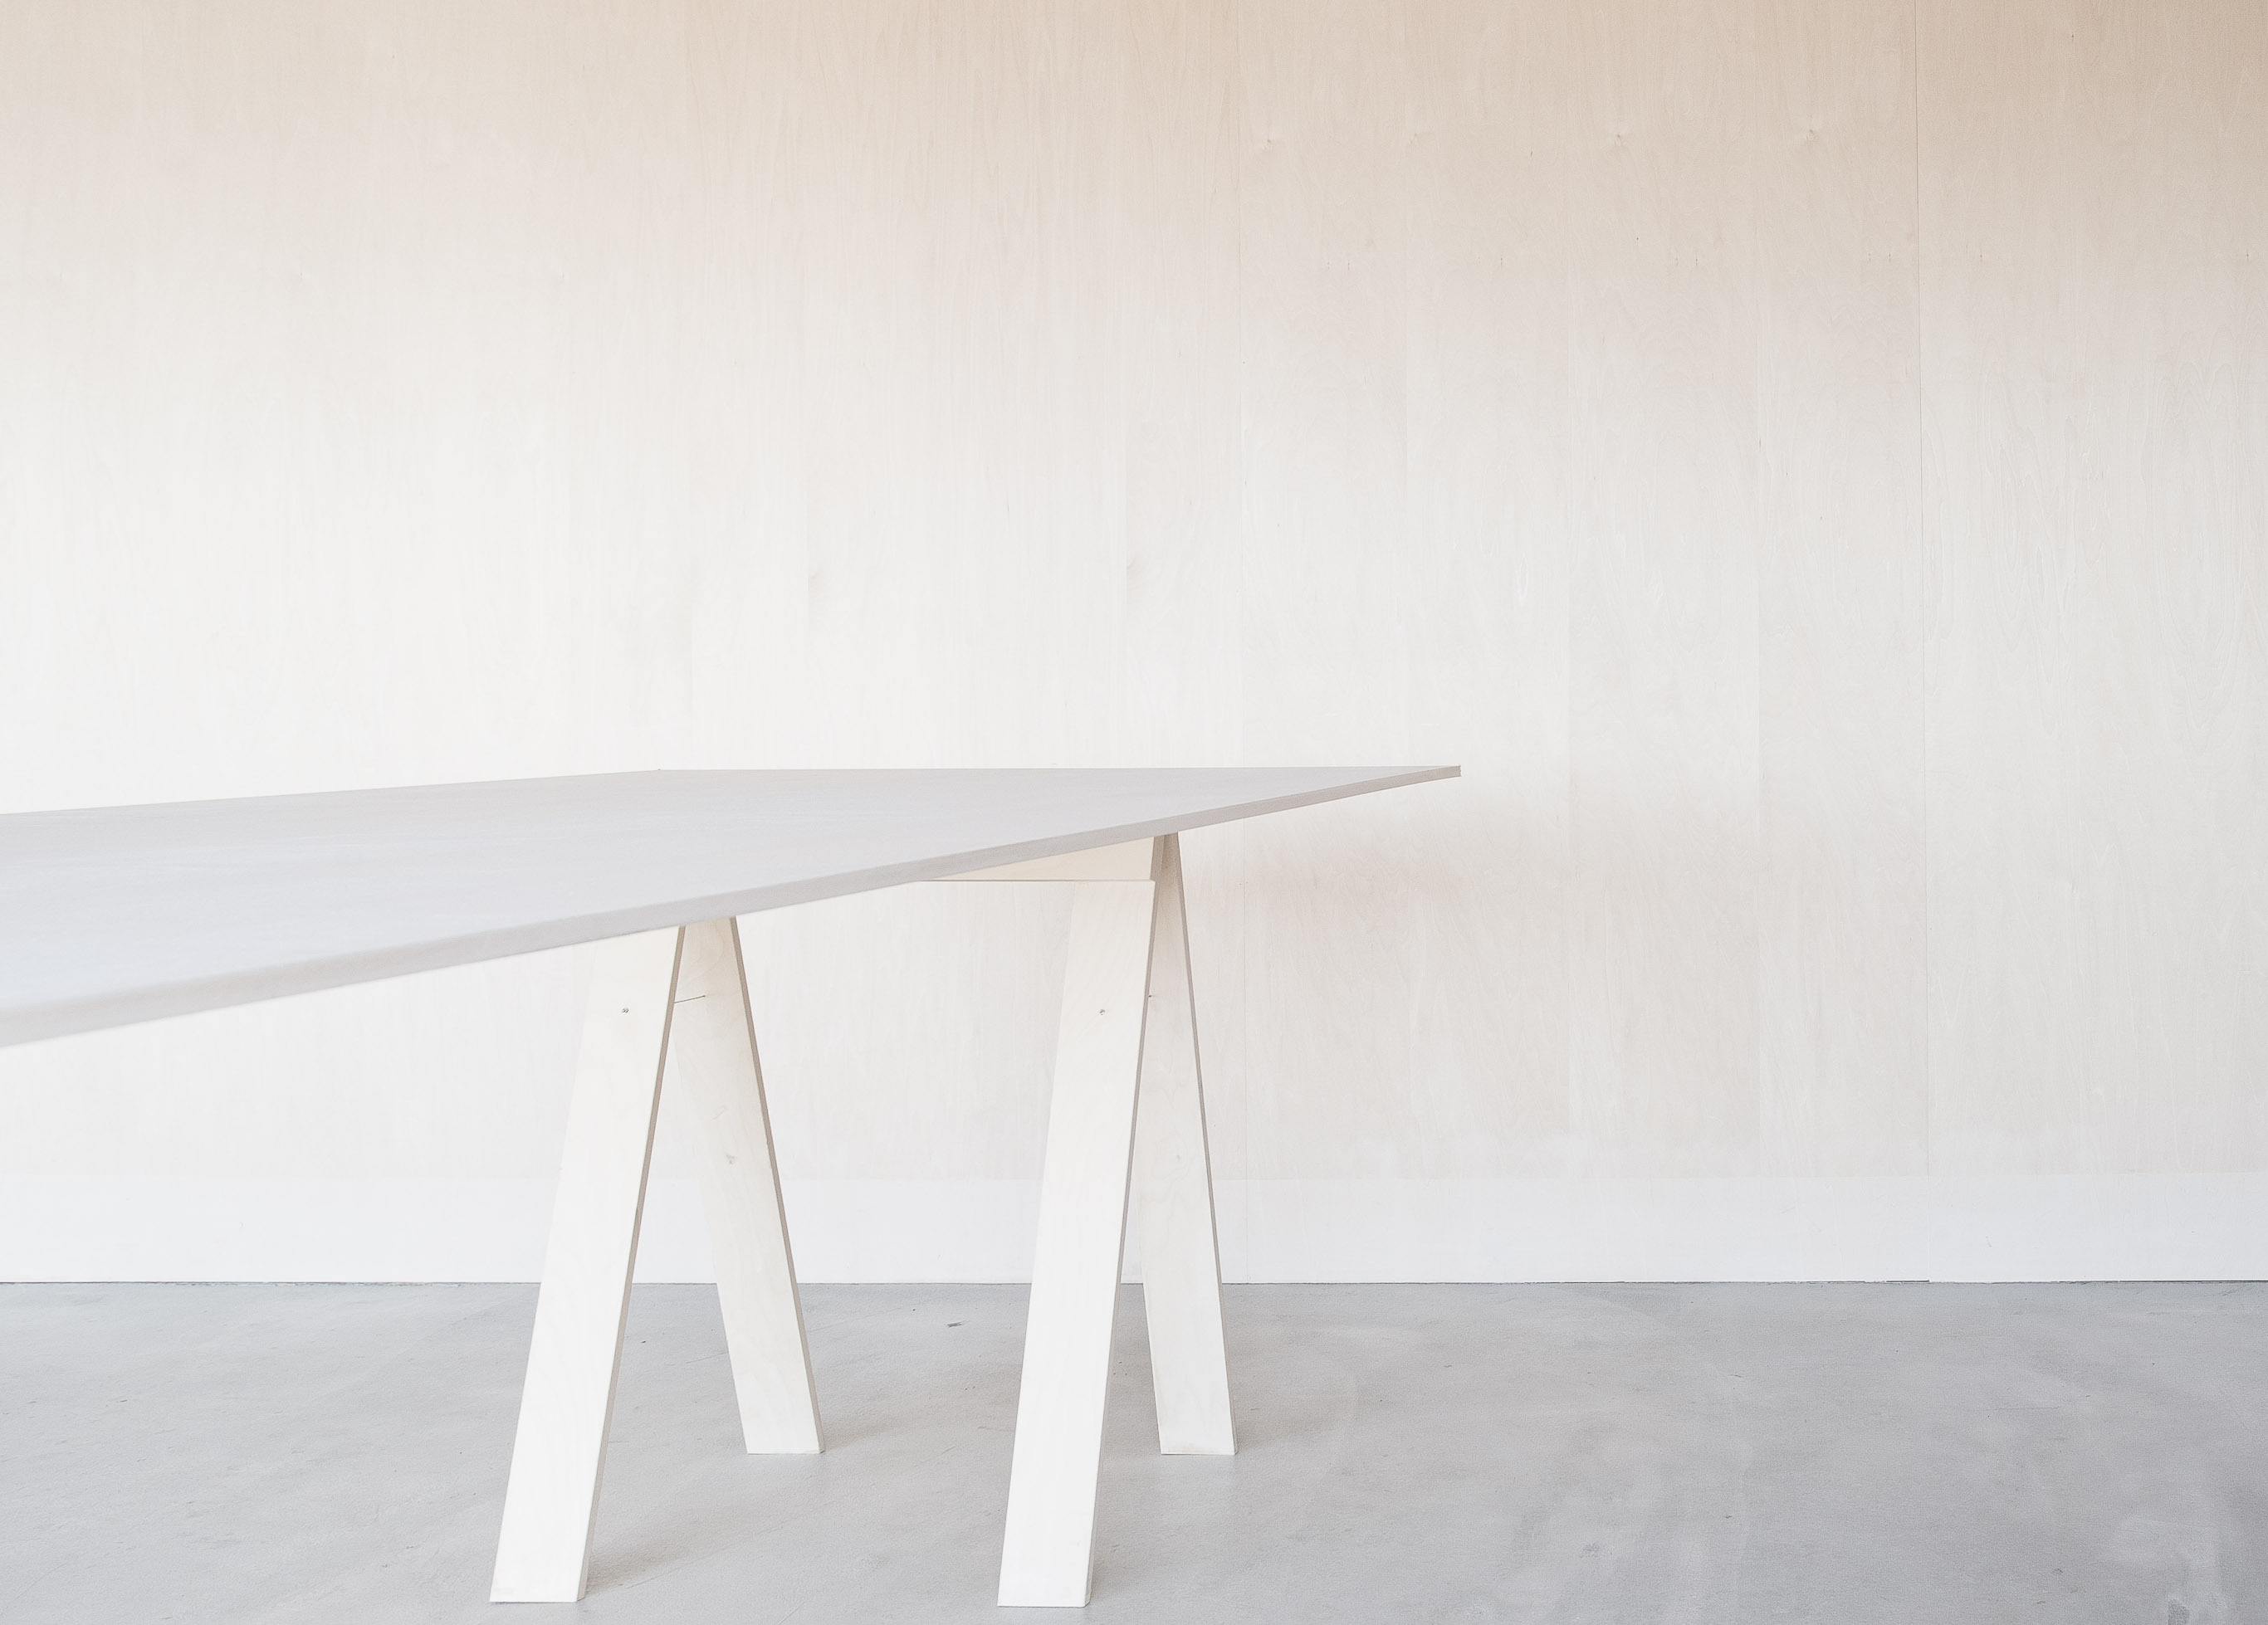 合板テーブル / Folding Table made of one plywood